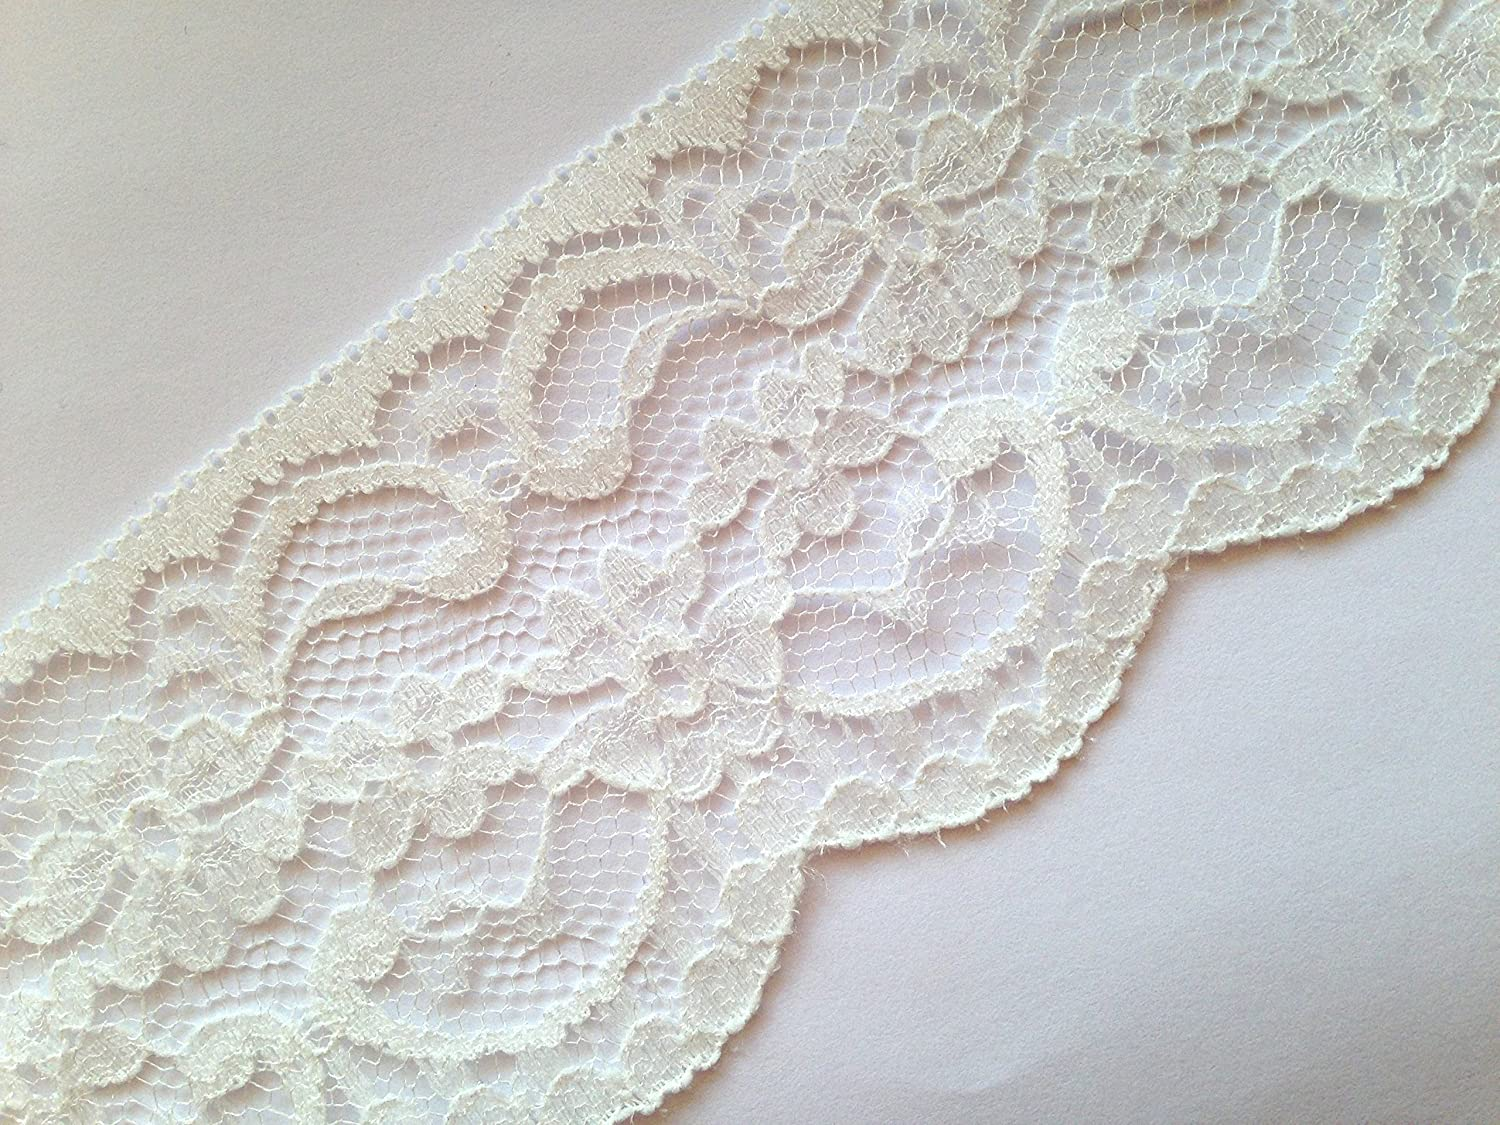 'Sparkles Gems' Vintage Style Lace Ribbon Trimming Bridal Wedding (Ivory, 60mm)